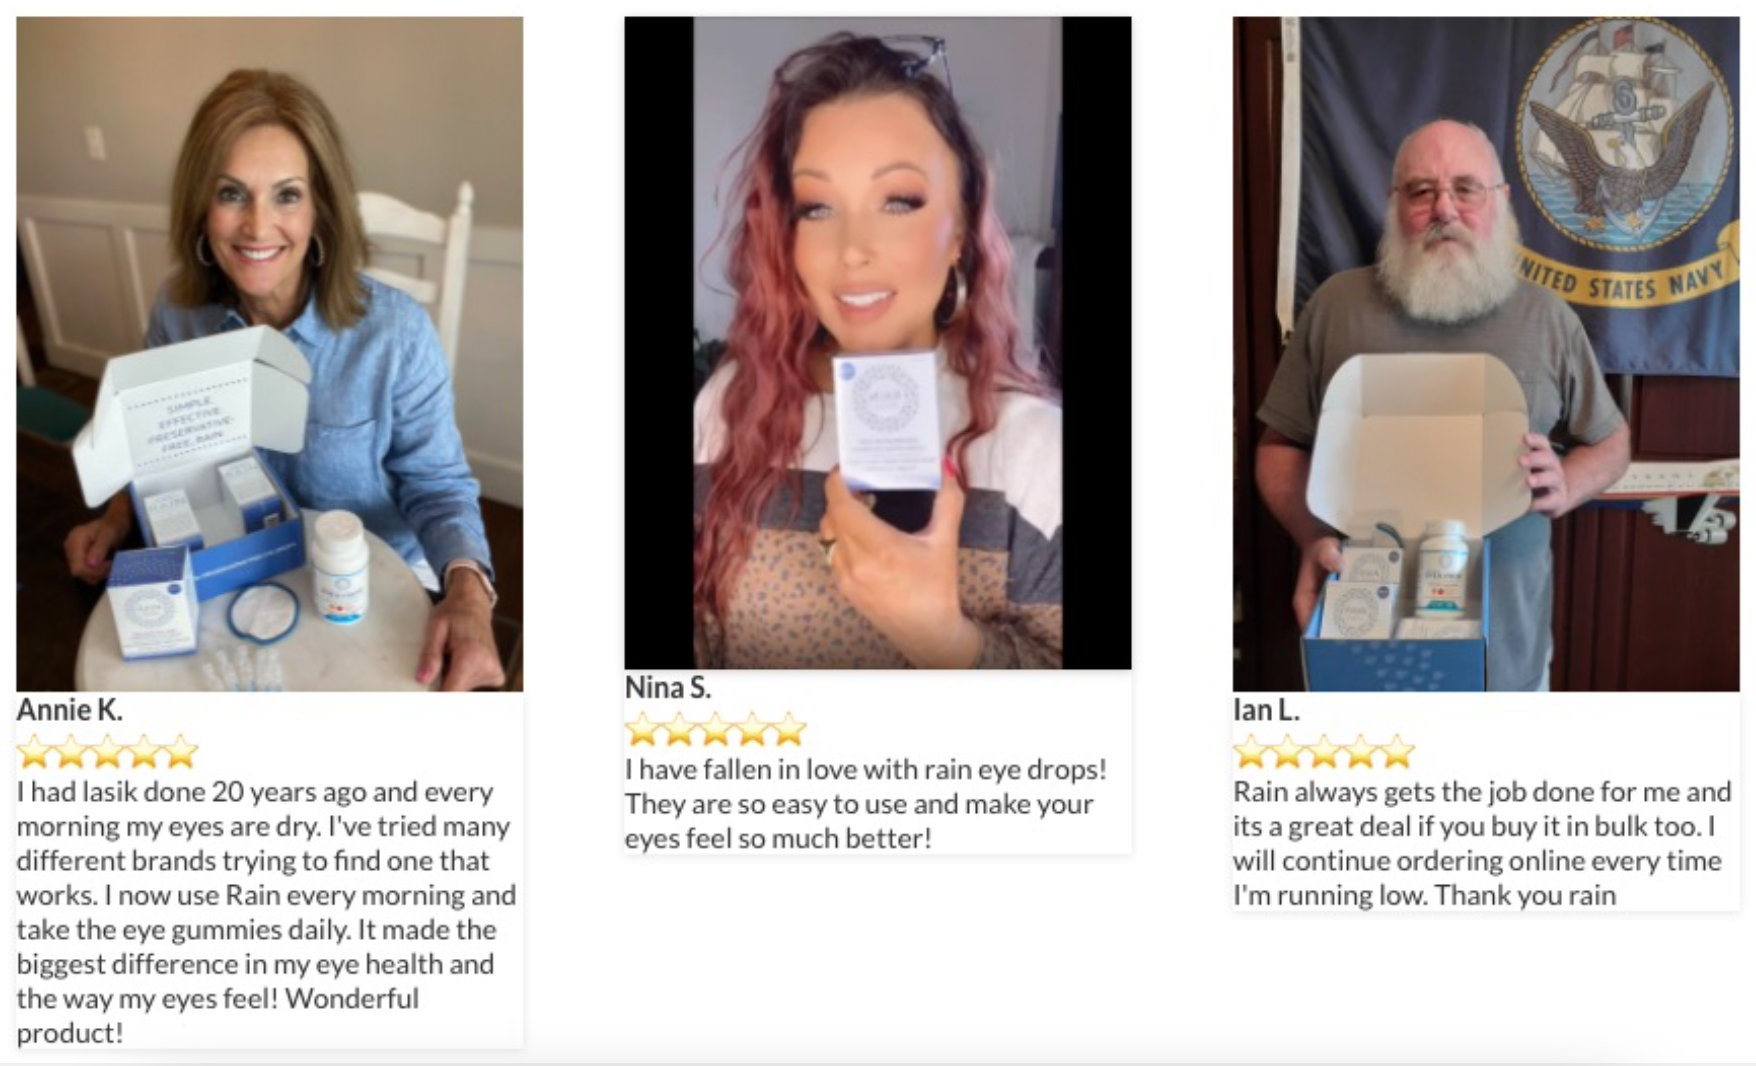 Rain Eye Drops Real Review From Customers.